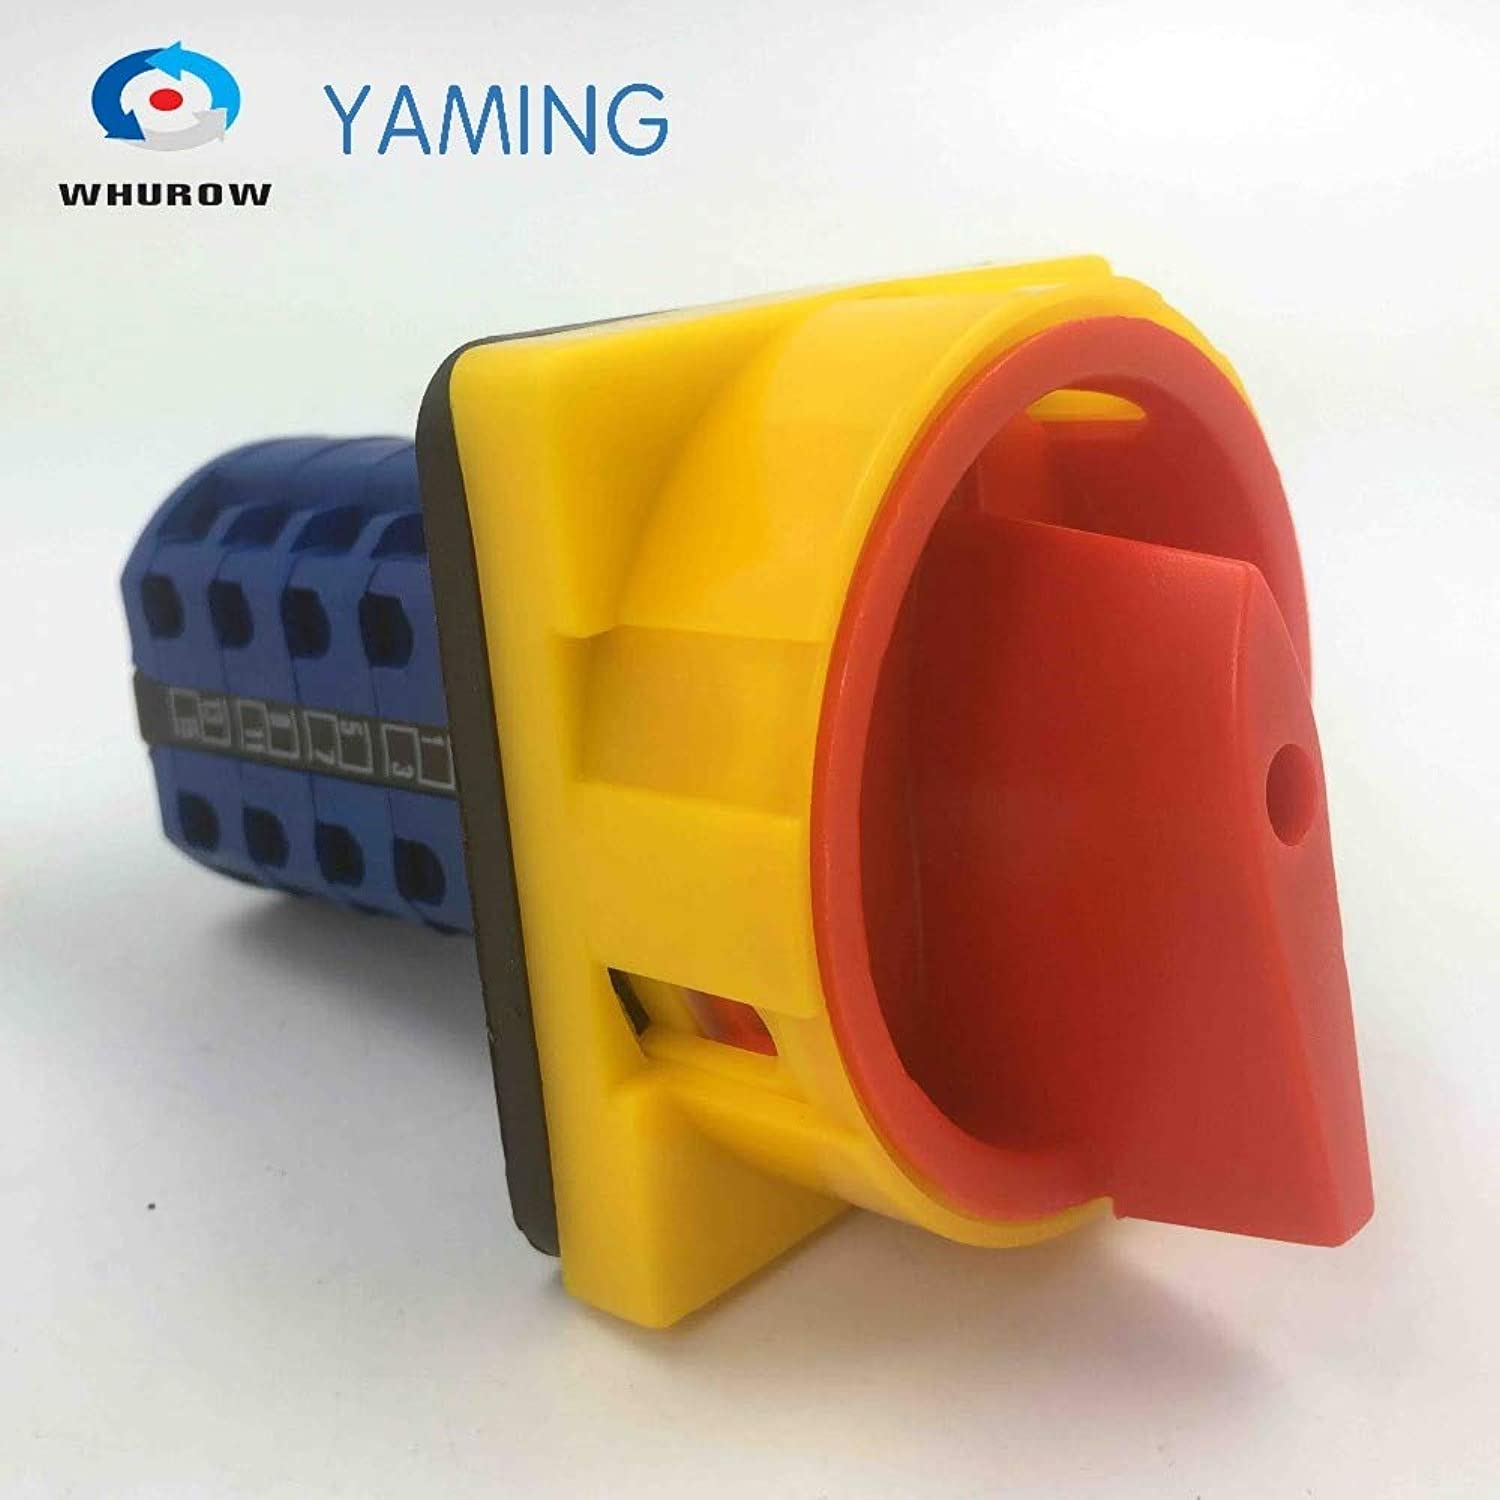 LW2620 690V 20A Padlock redary Cam Switch OffON 2 Position 4 Poles 16 terminals Main Switch Emergency Stop YMW2620 4GS